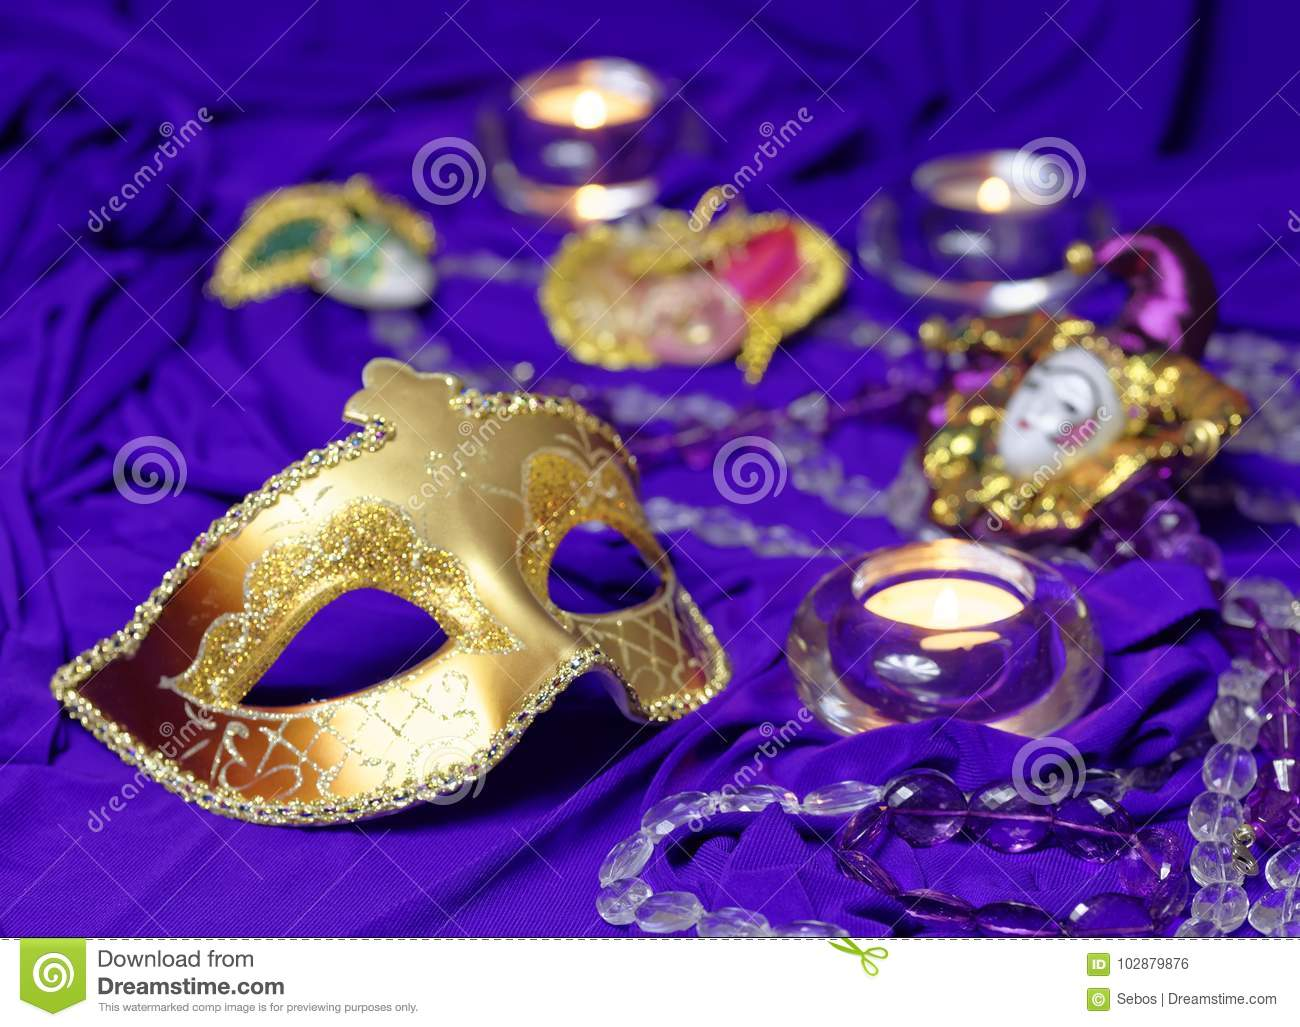 Colorful Mardi Gras or Carnival masks group on a purple background.